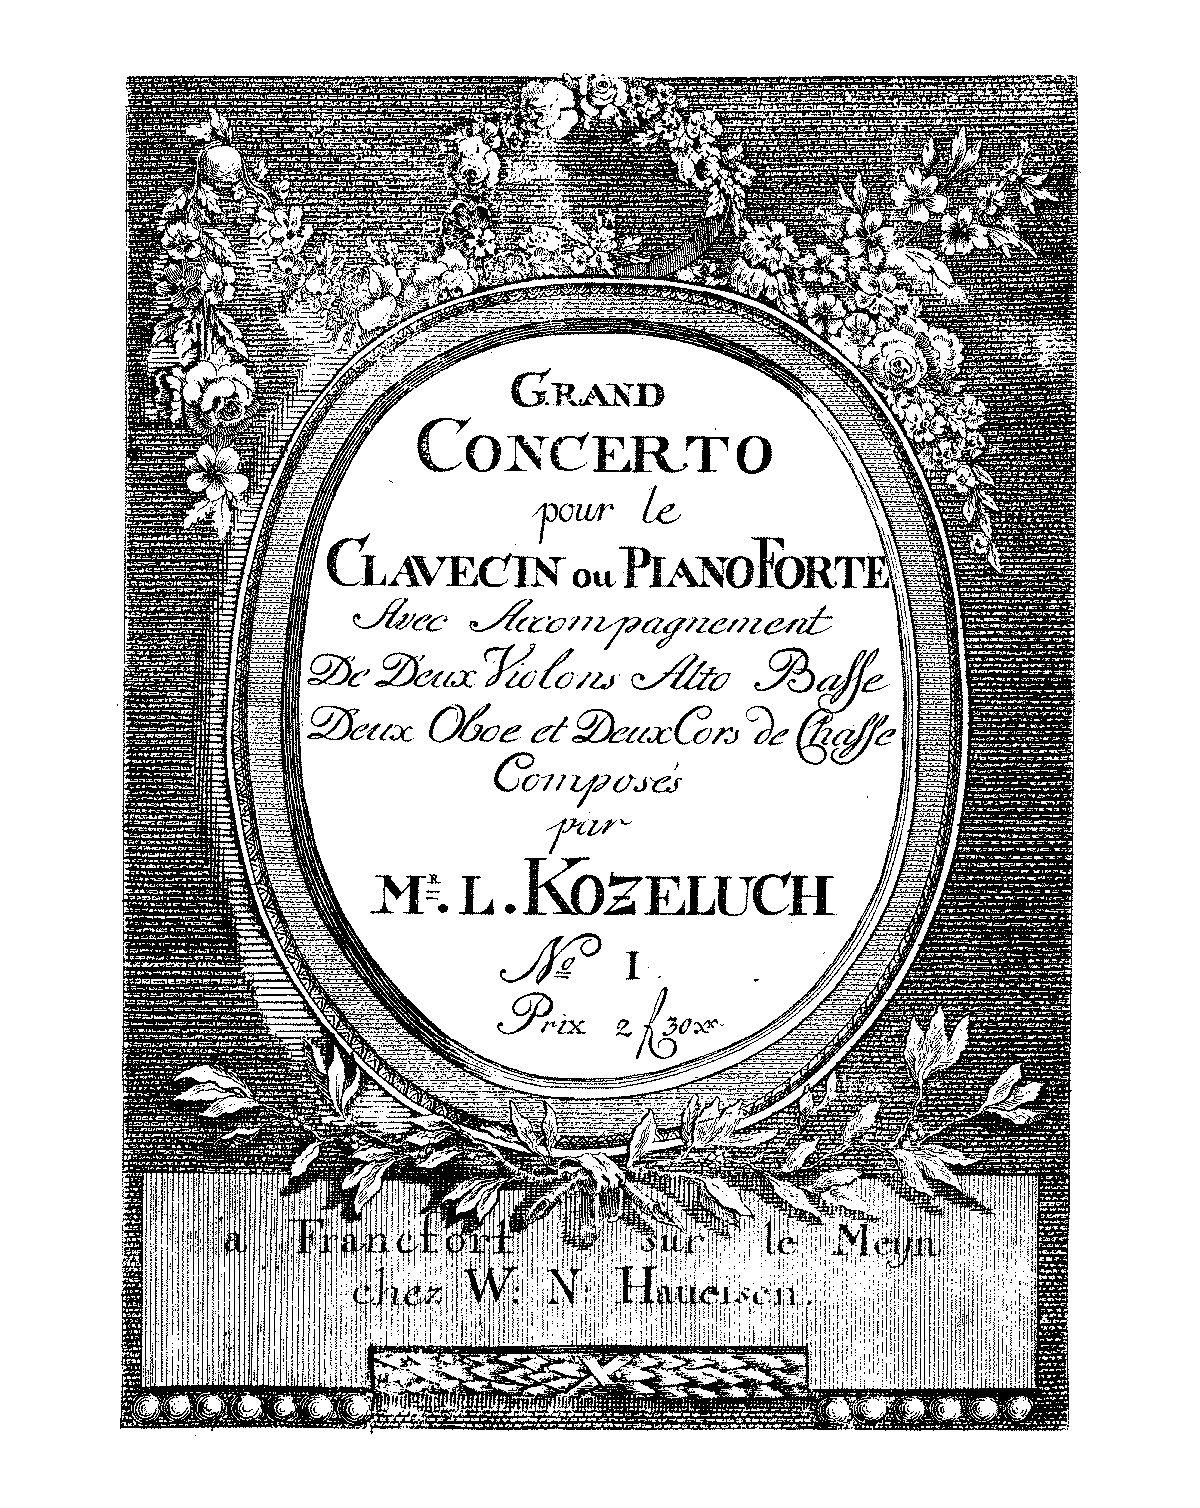 PMLP343887-LKozeluch Keyboard Concerto in F major PIV1 orchparts.pdf